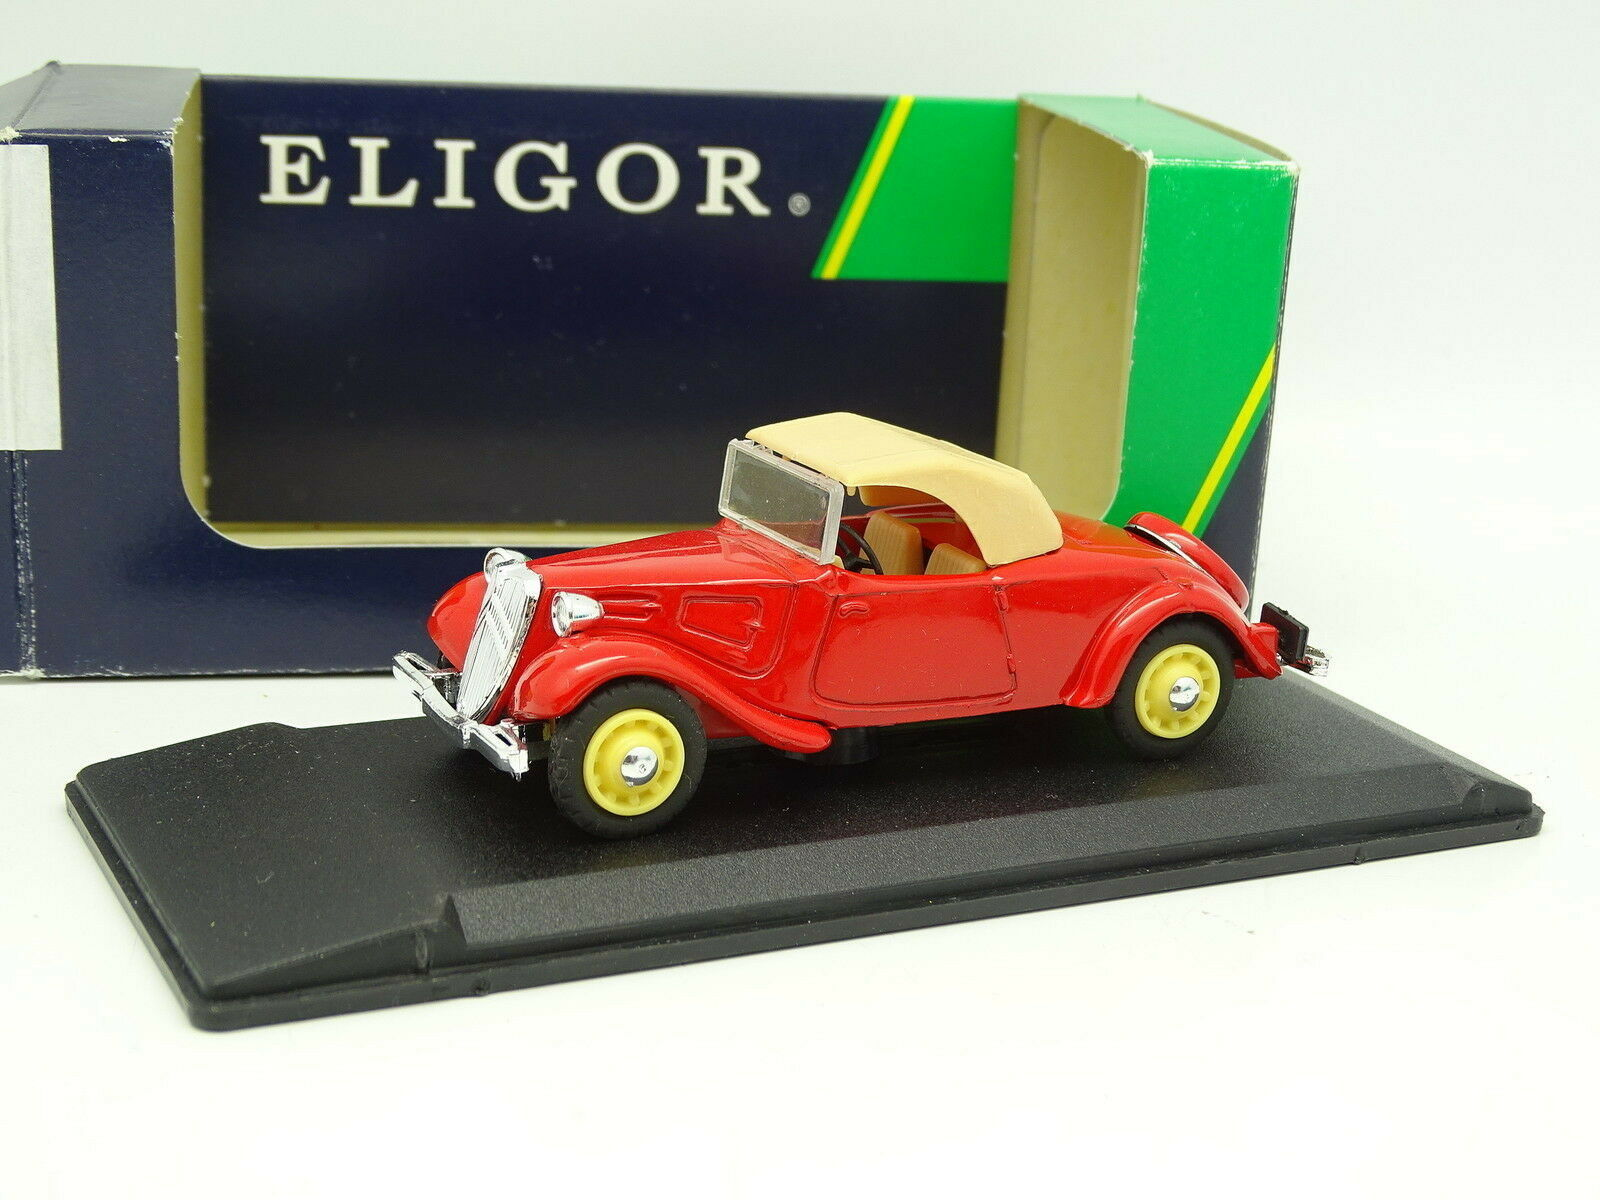 Eligor 1 43 - Citroen Traction Cabriolet Red